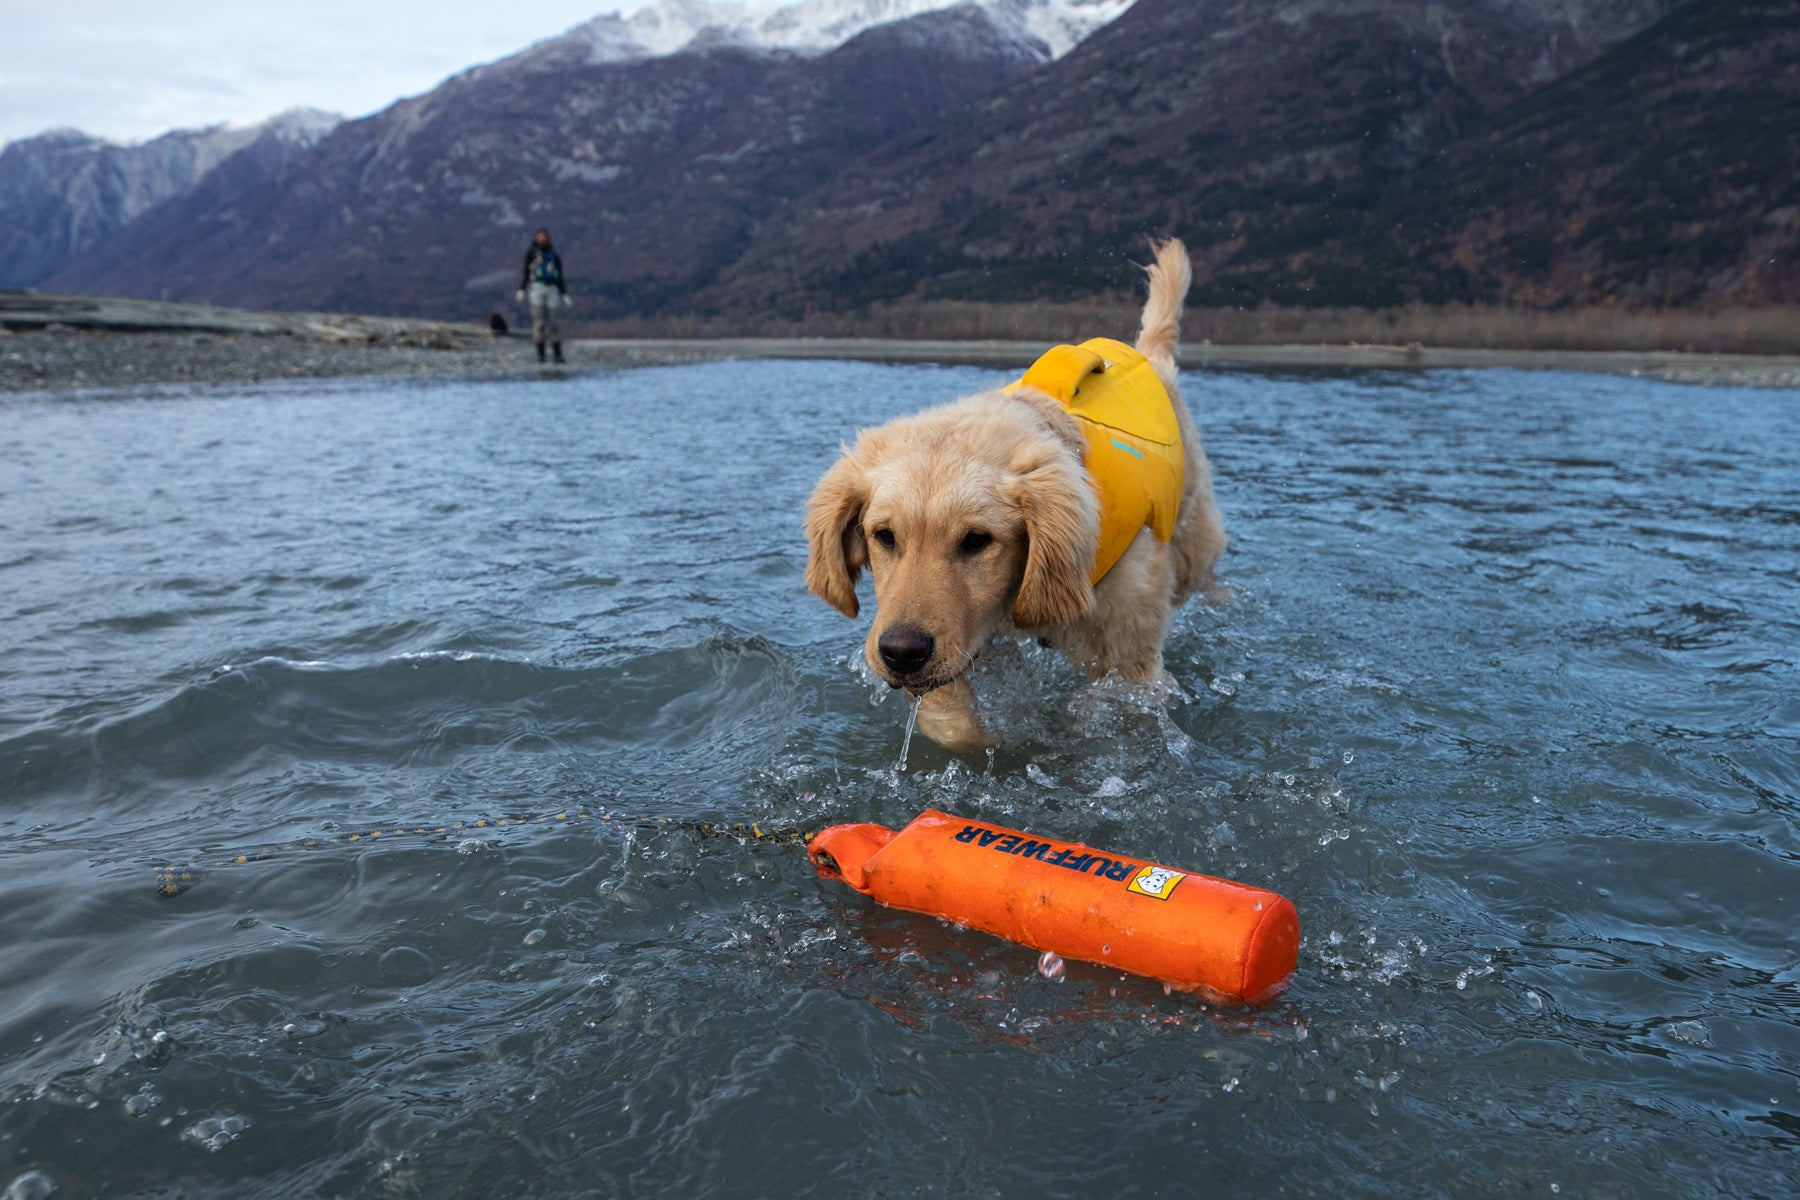 Sammy wades into the water to retrieve a Lunker Floating Throw Toy.